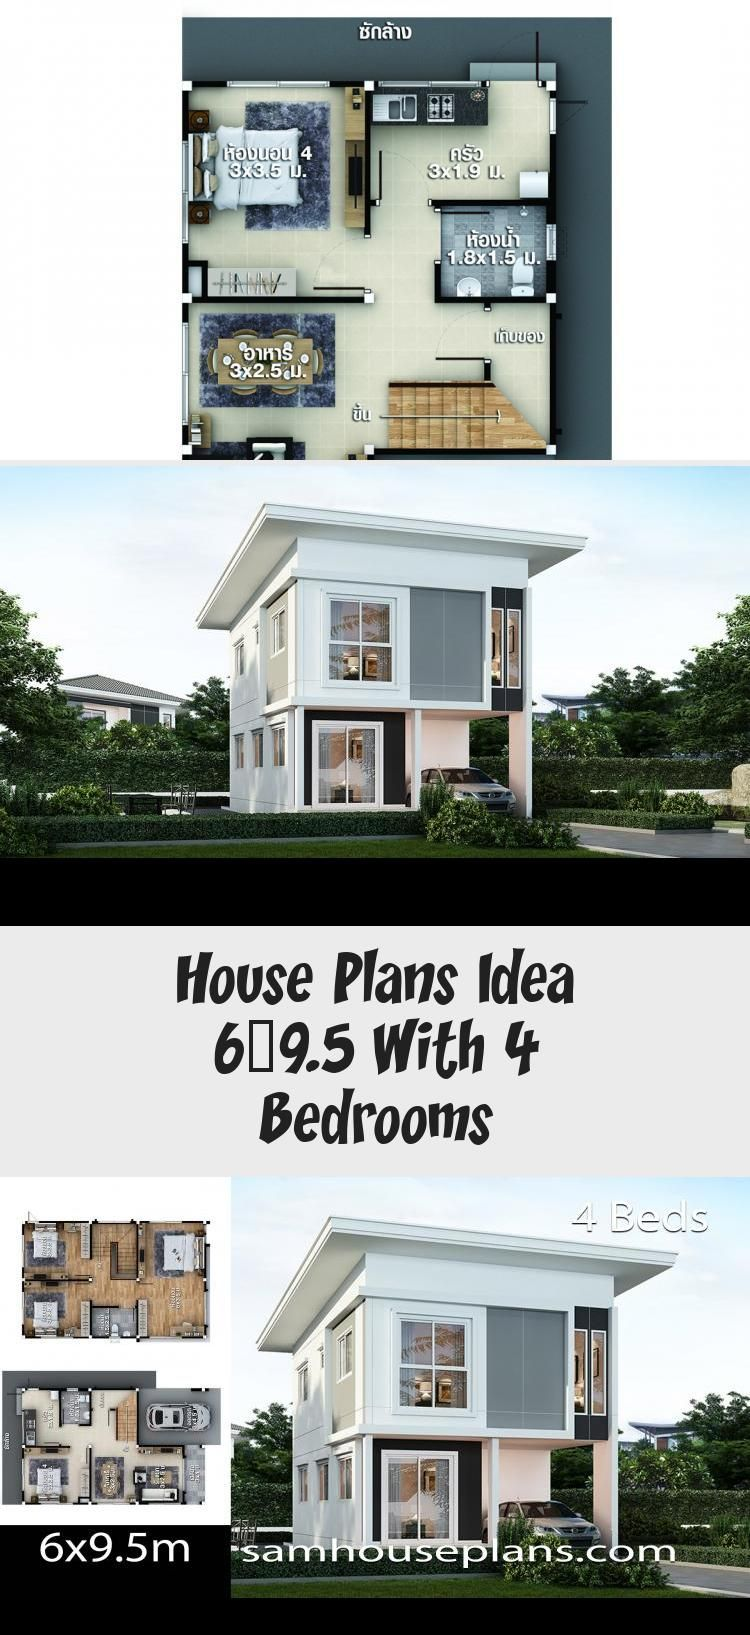 Plans Idea 6 9 5 With 4 Bedrooms In 2020 Affordable House Plans Unique House Plans House Plans